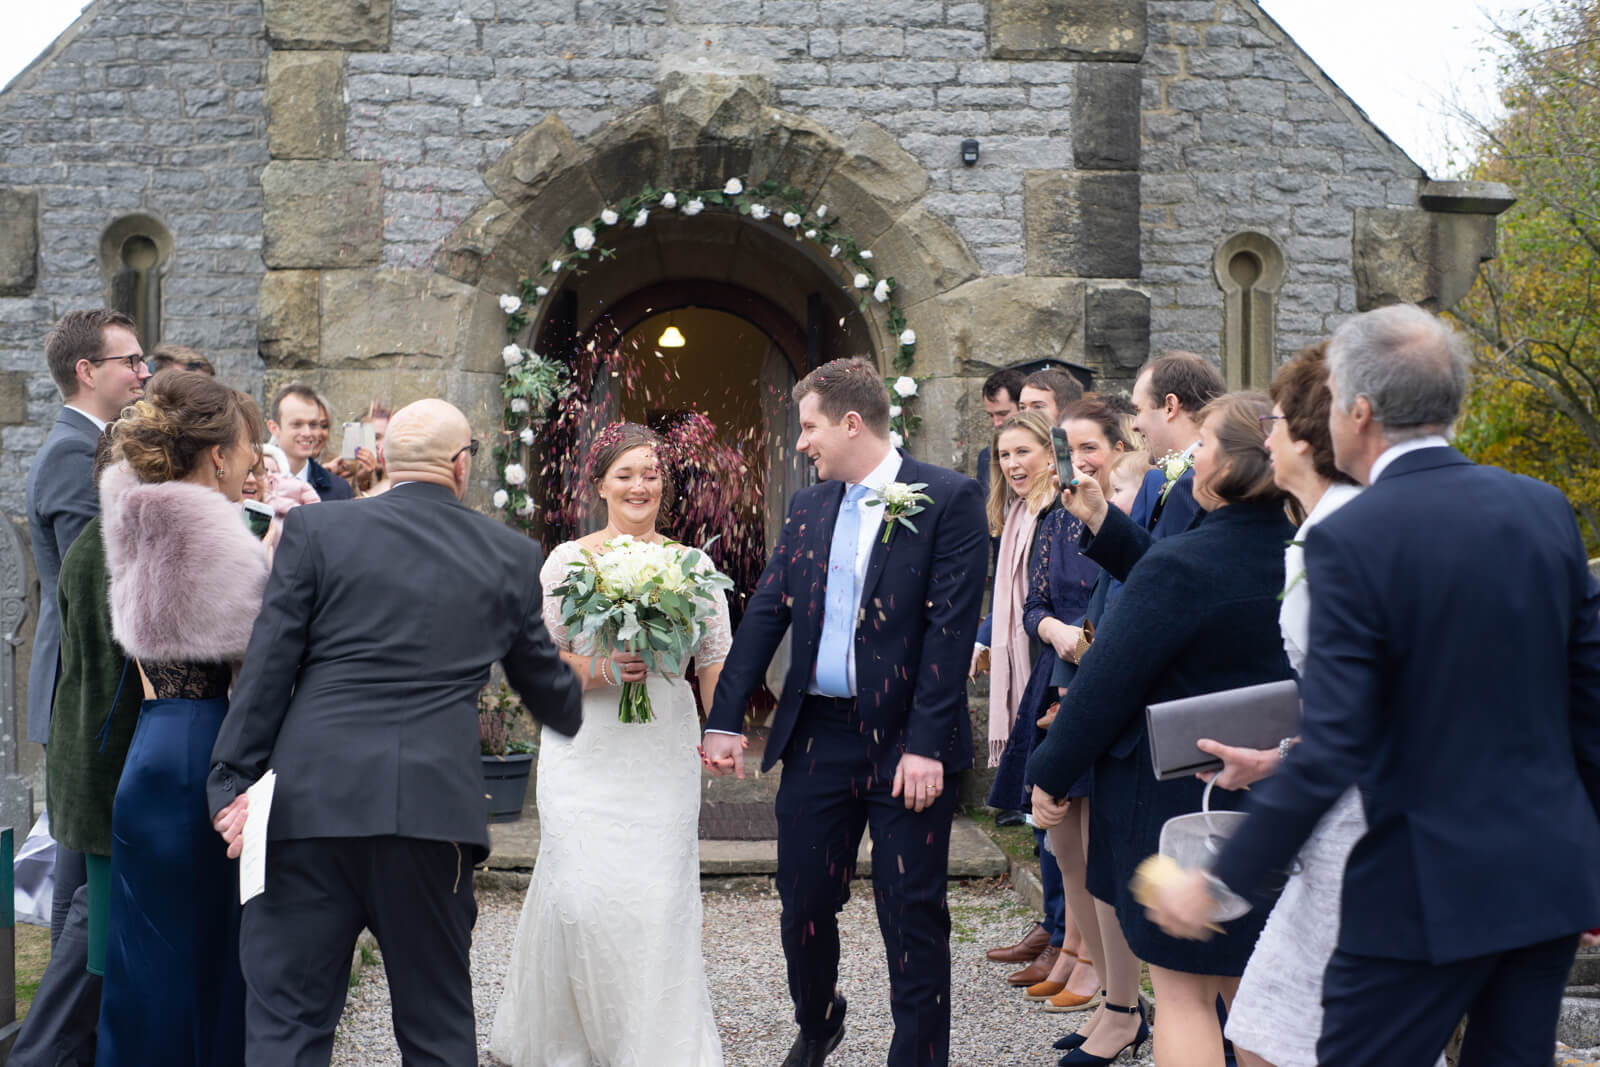 Bride and groom walk through their guests and are showered with confetti outside the chapel